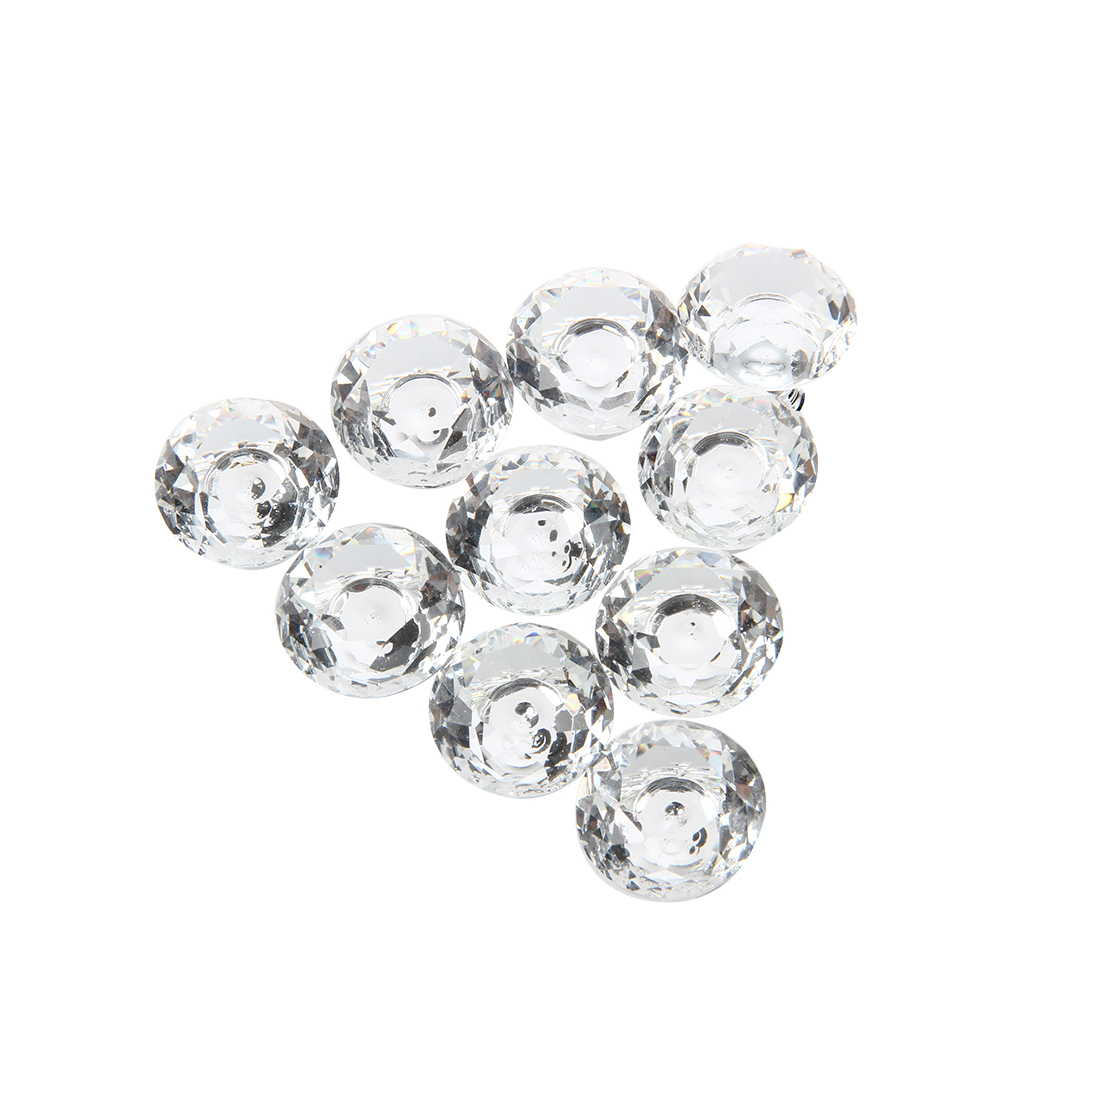 10pcs 30mm Diamond Crystal Glass Door Drawer Cabinet Furniture Handle Knob Screw 3pcs x battery 1 charging line for mjx b3 bugs b3 little monster brushless quadcopter 7 4v 1800mah 25c battery